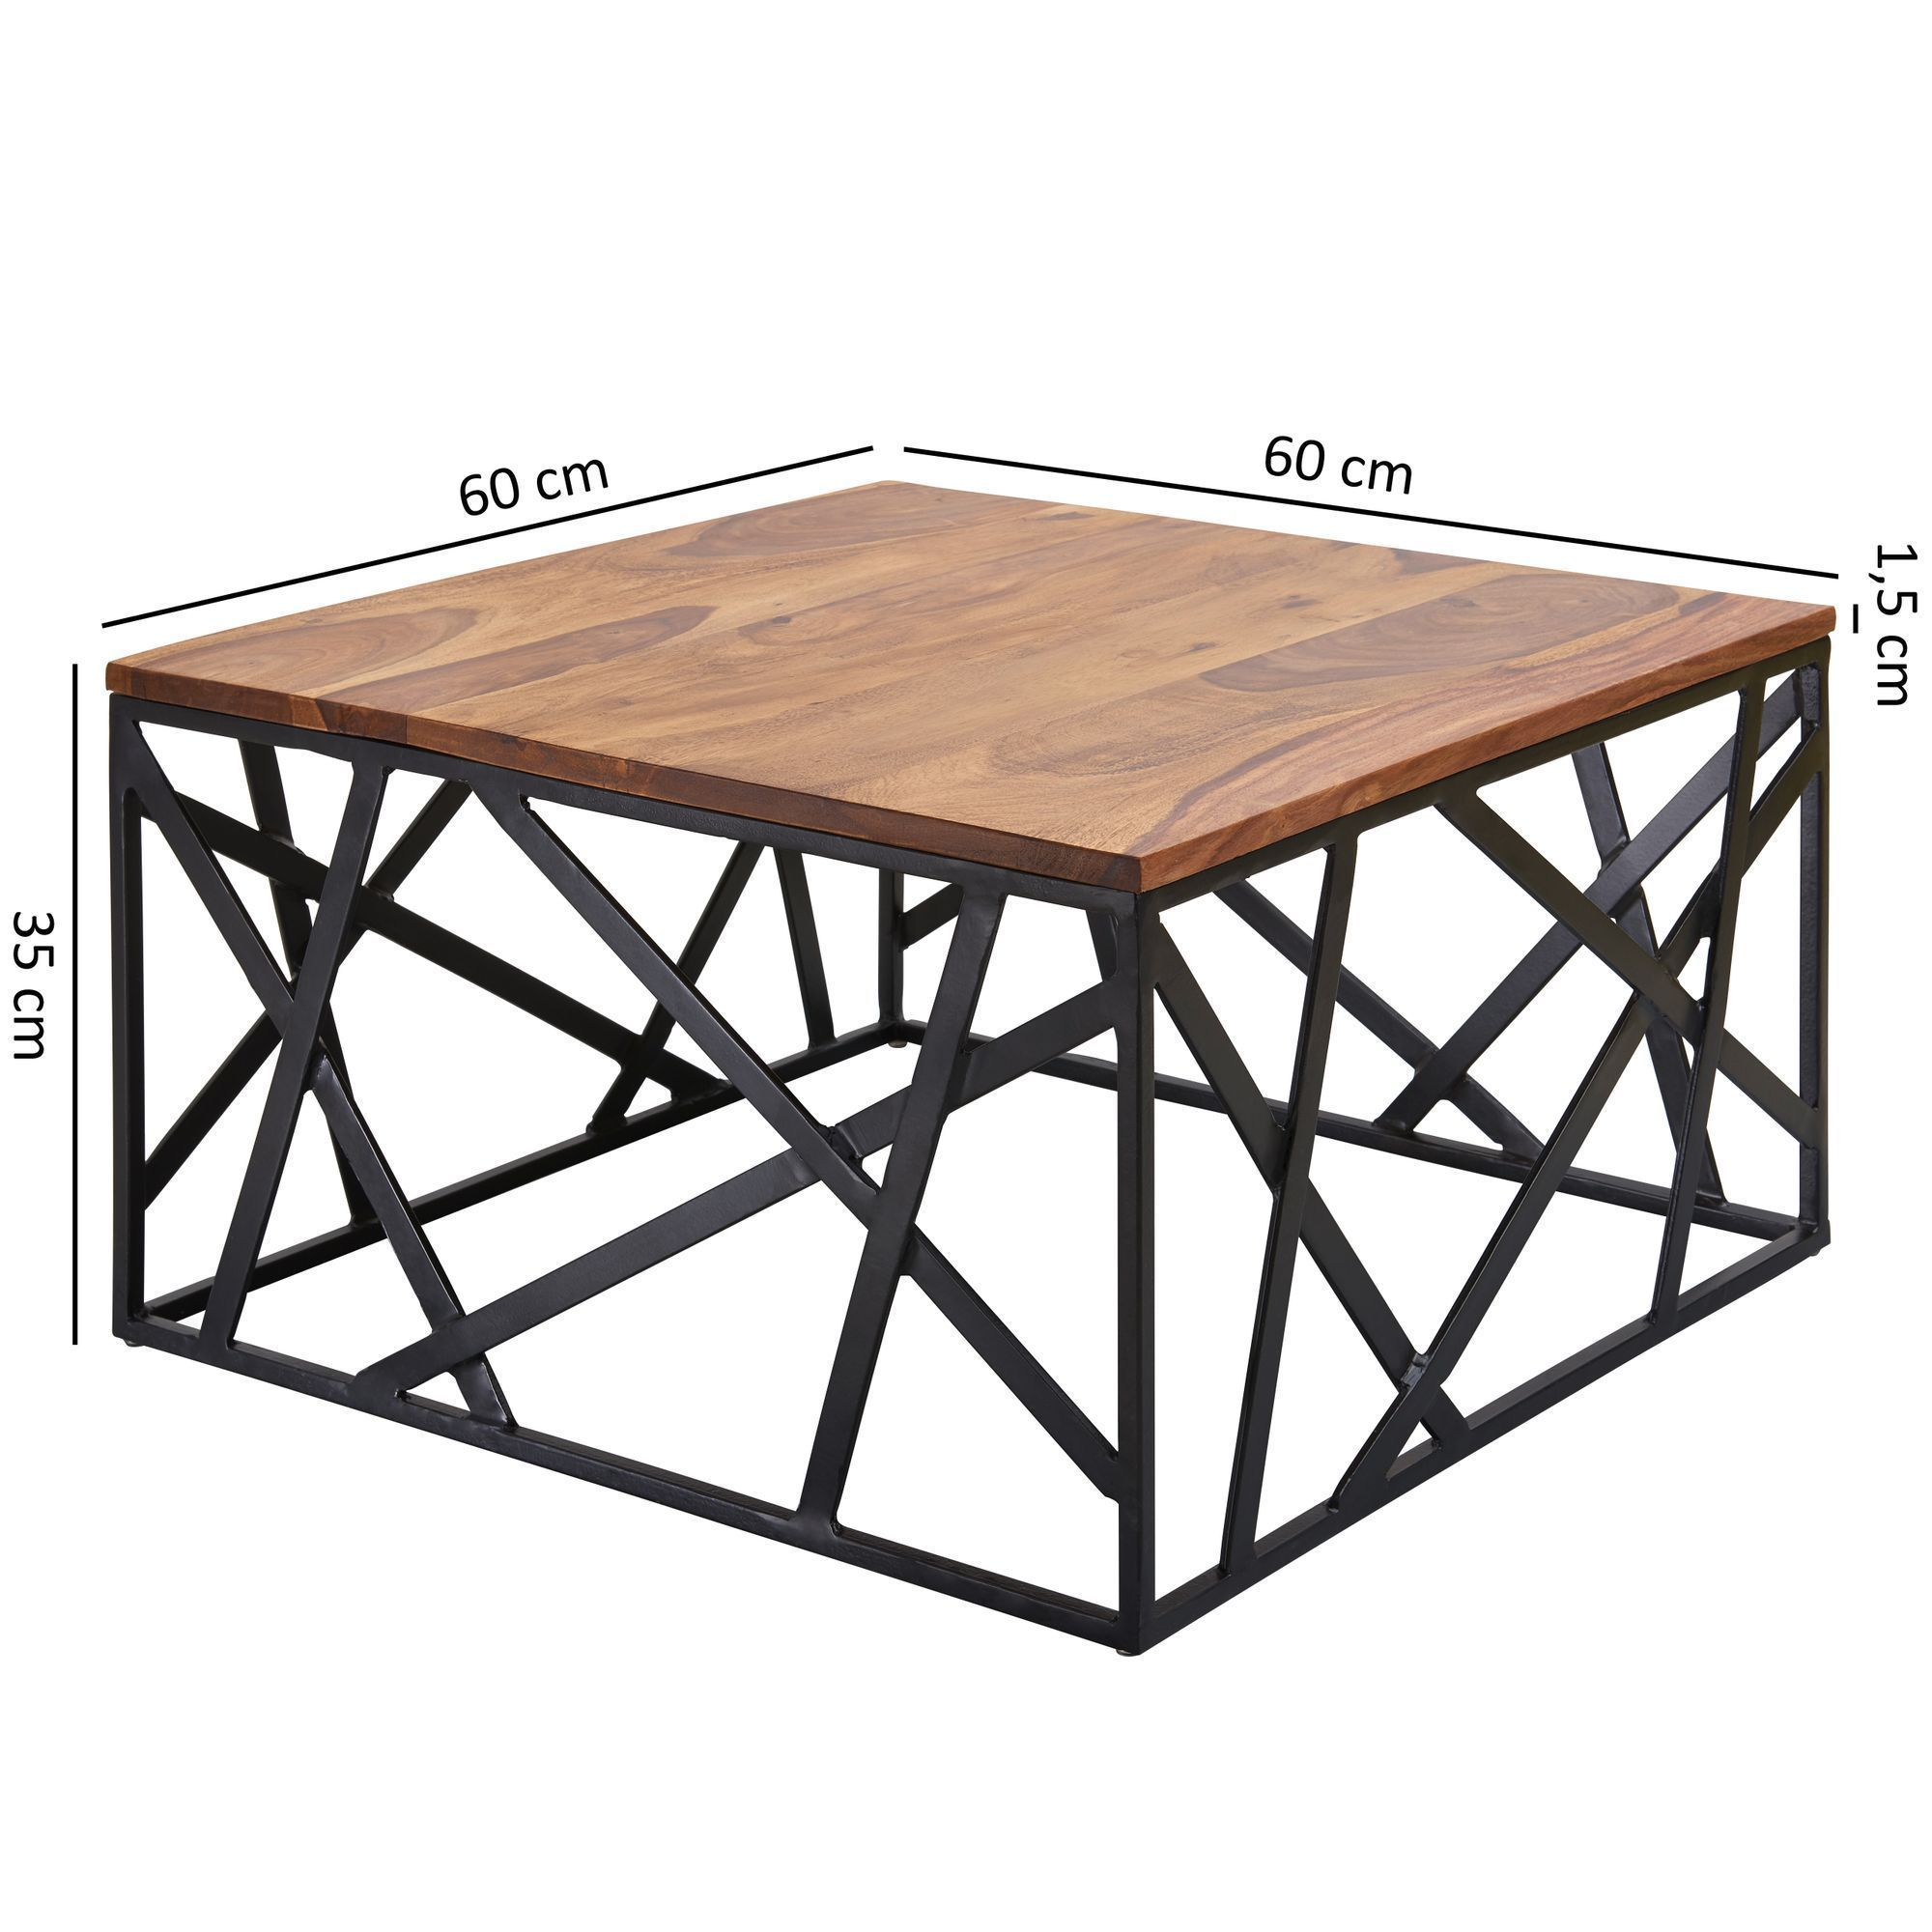 Wooden center table With Iron Mix Maestro